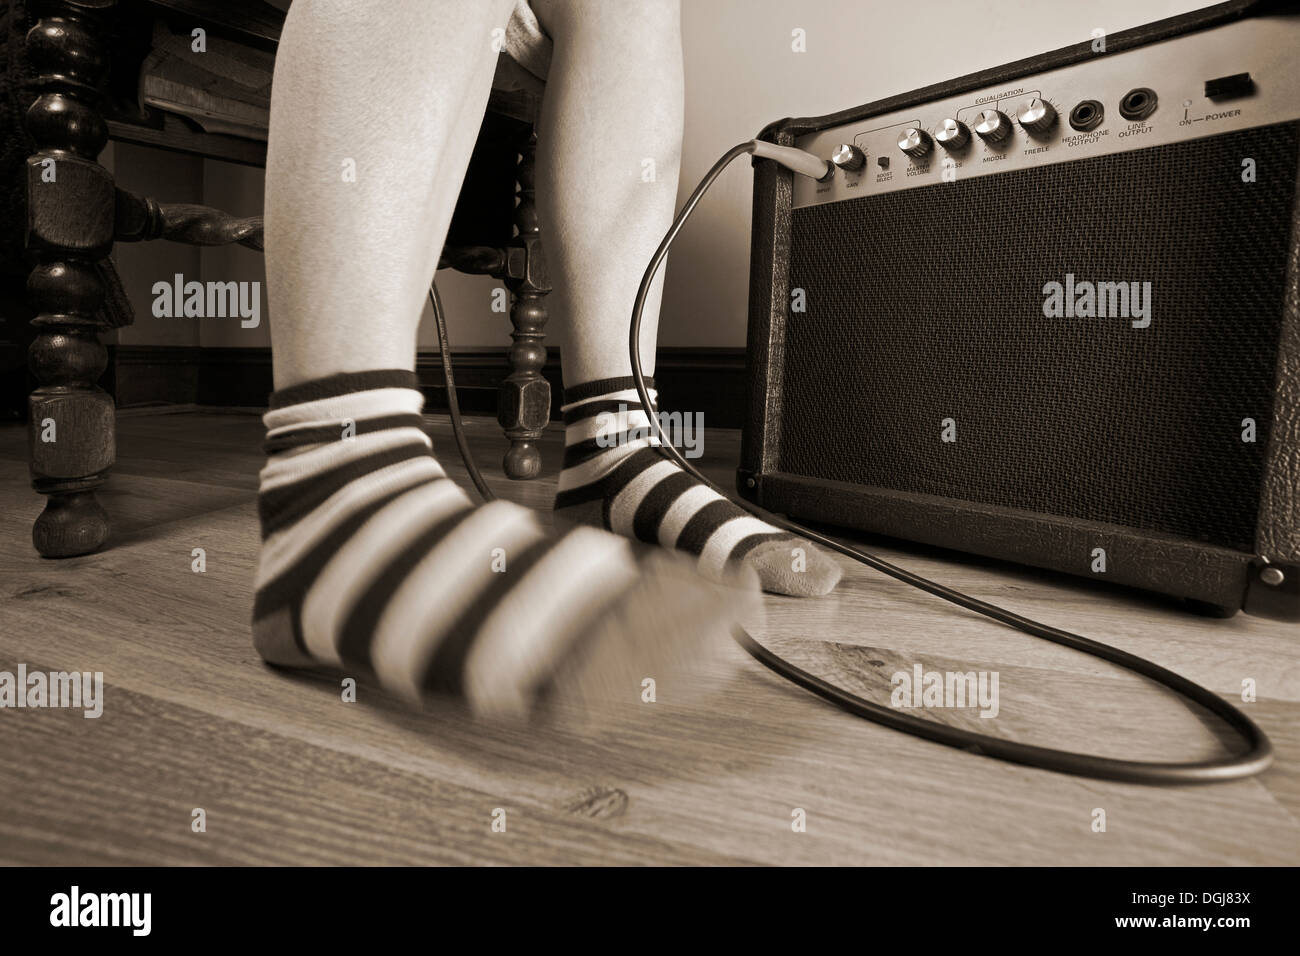 A foot tapping in time with music. - Stock Image